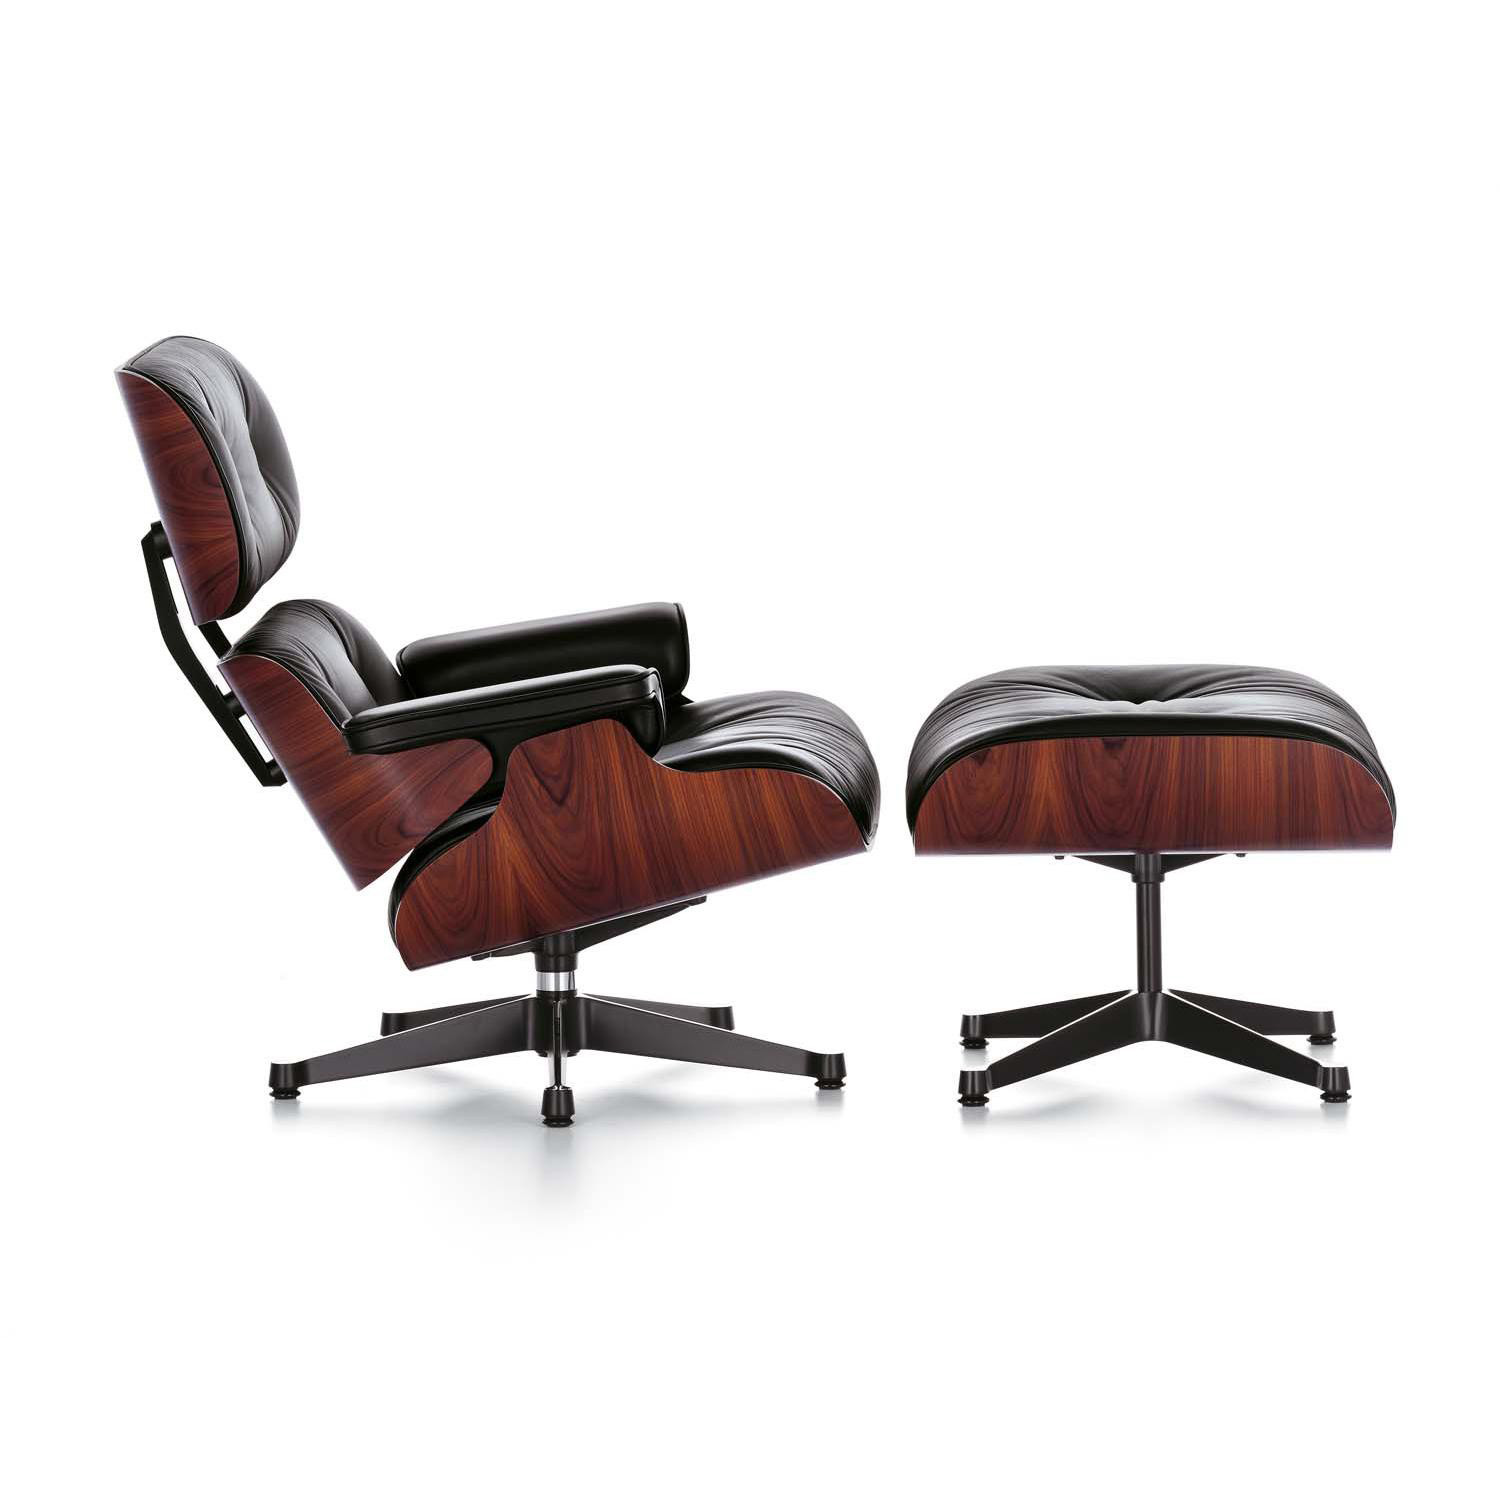 Lounge Chair & Ottoman - Fauteuils / Vitra